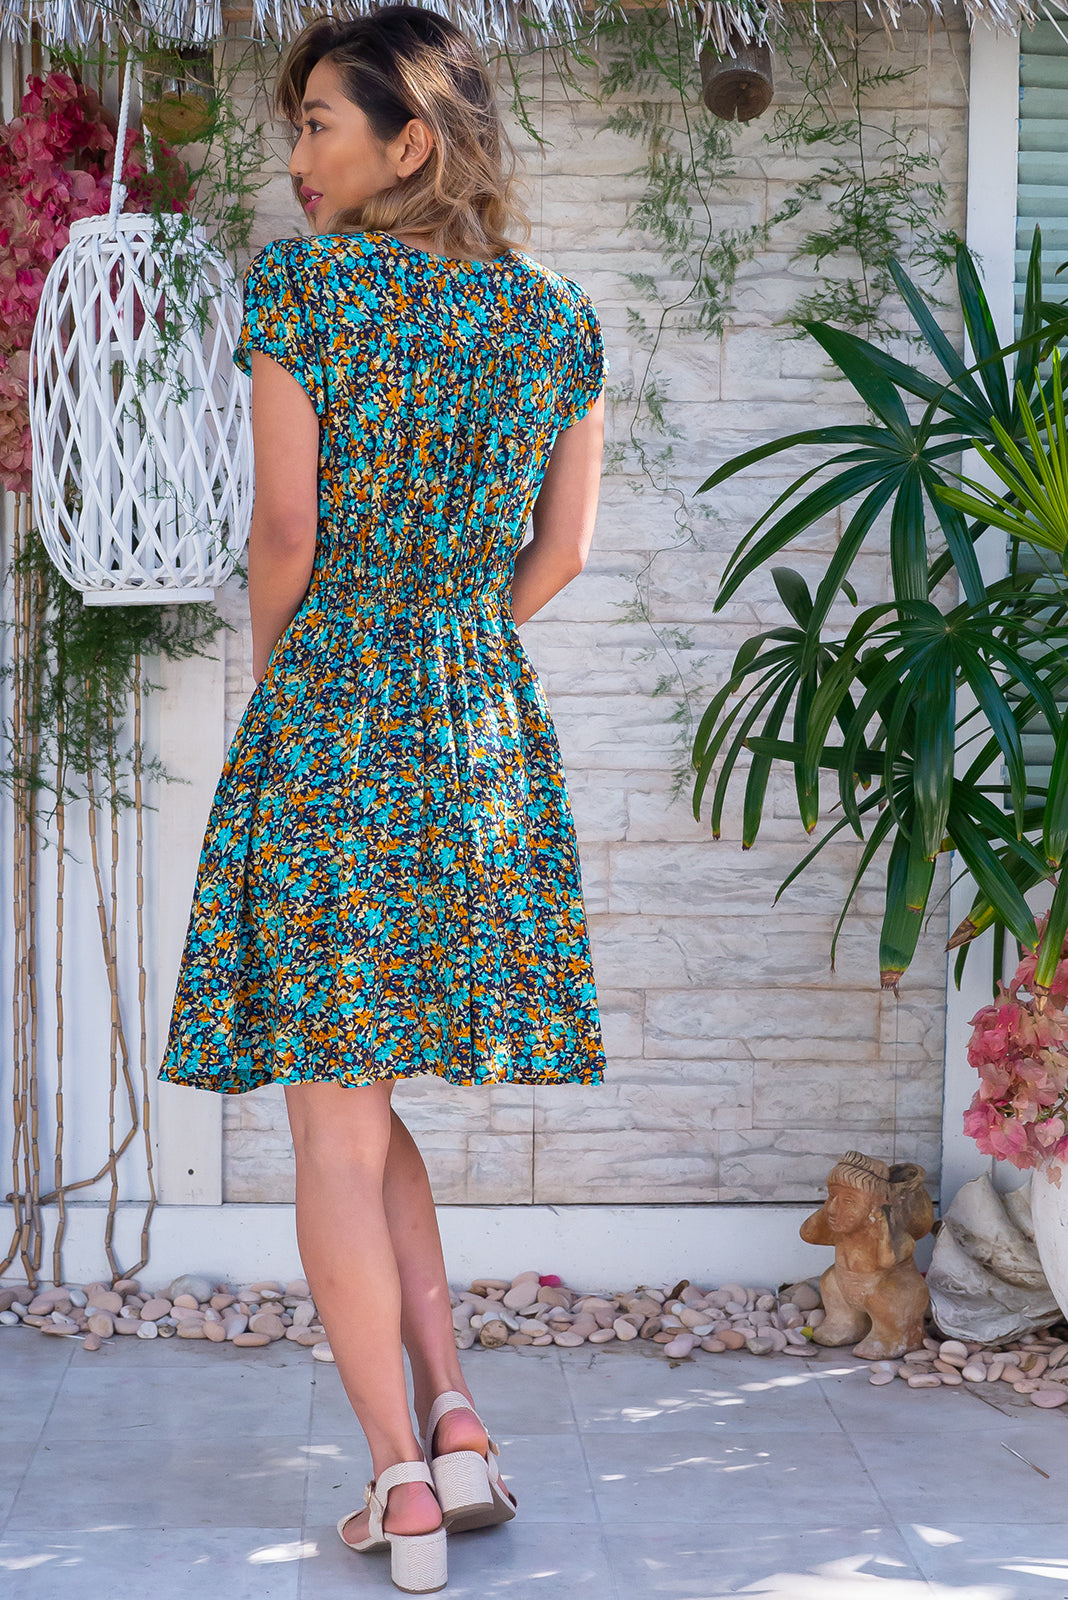 The Maggie May Navy Sprinkles Dress features gathered bust with basque underneath, waist features comfortable elastic shirring at back, deep side pockets, flirty skirt draping from underneath bust and 100% rayon in navy base and multicoloured floral print.